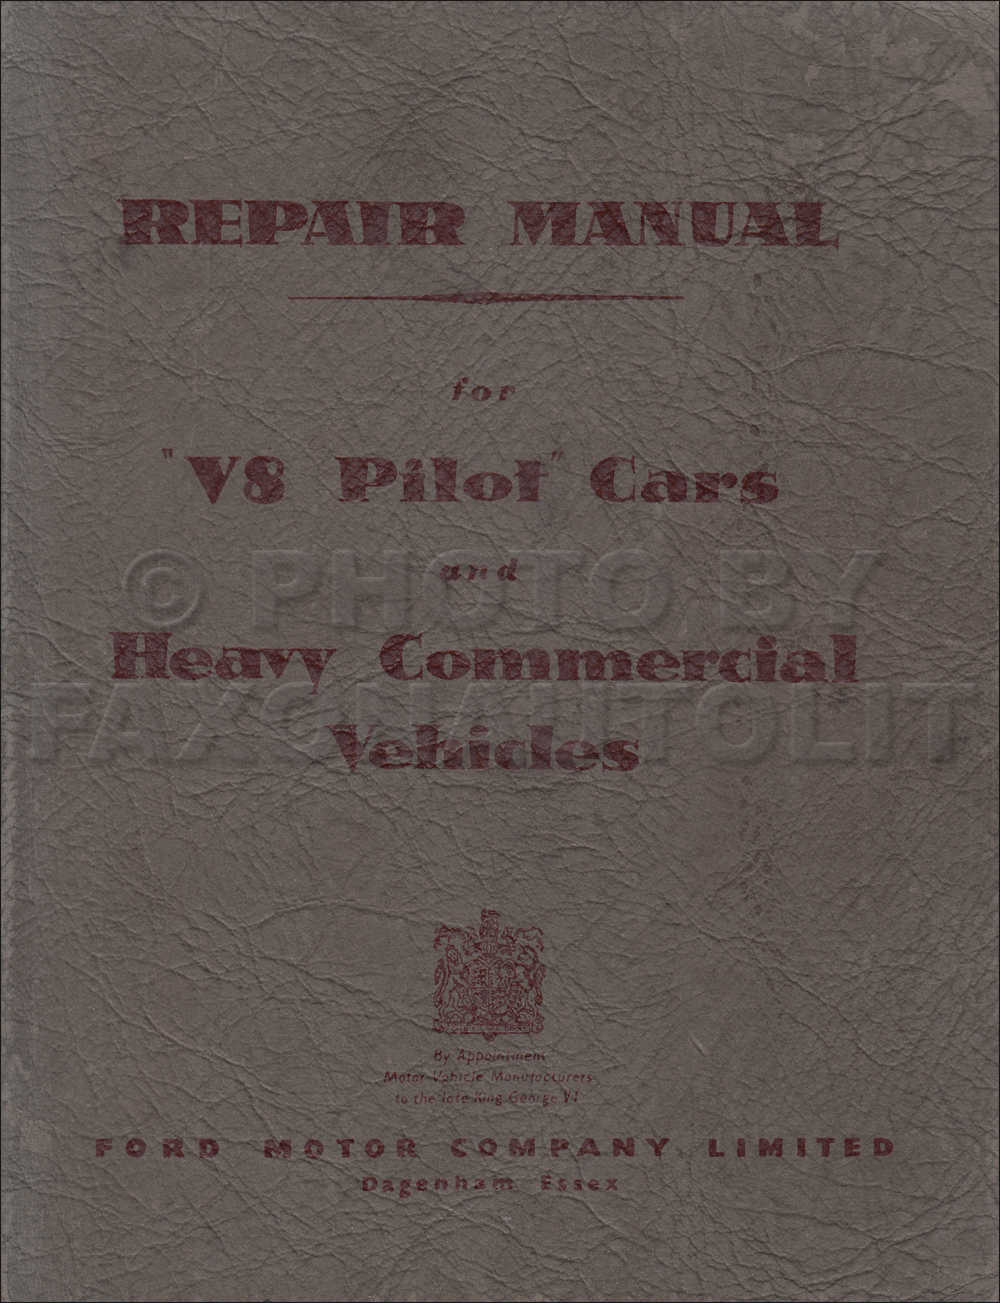 1947-1954 Ford UK V8 Pilot Car & Forward Control Repair Shop Manual Original